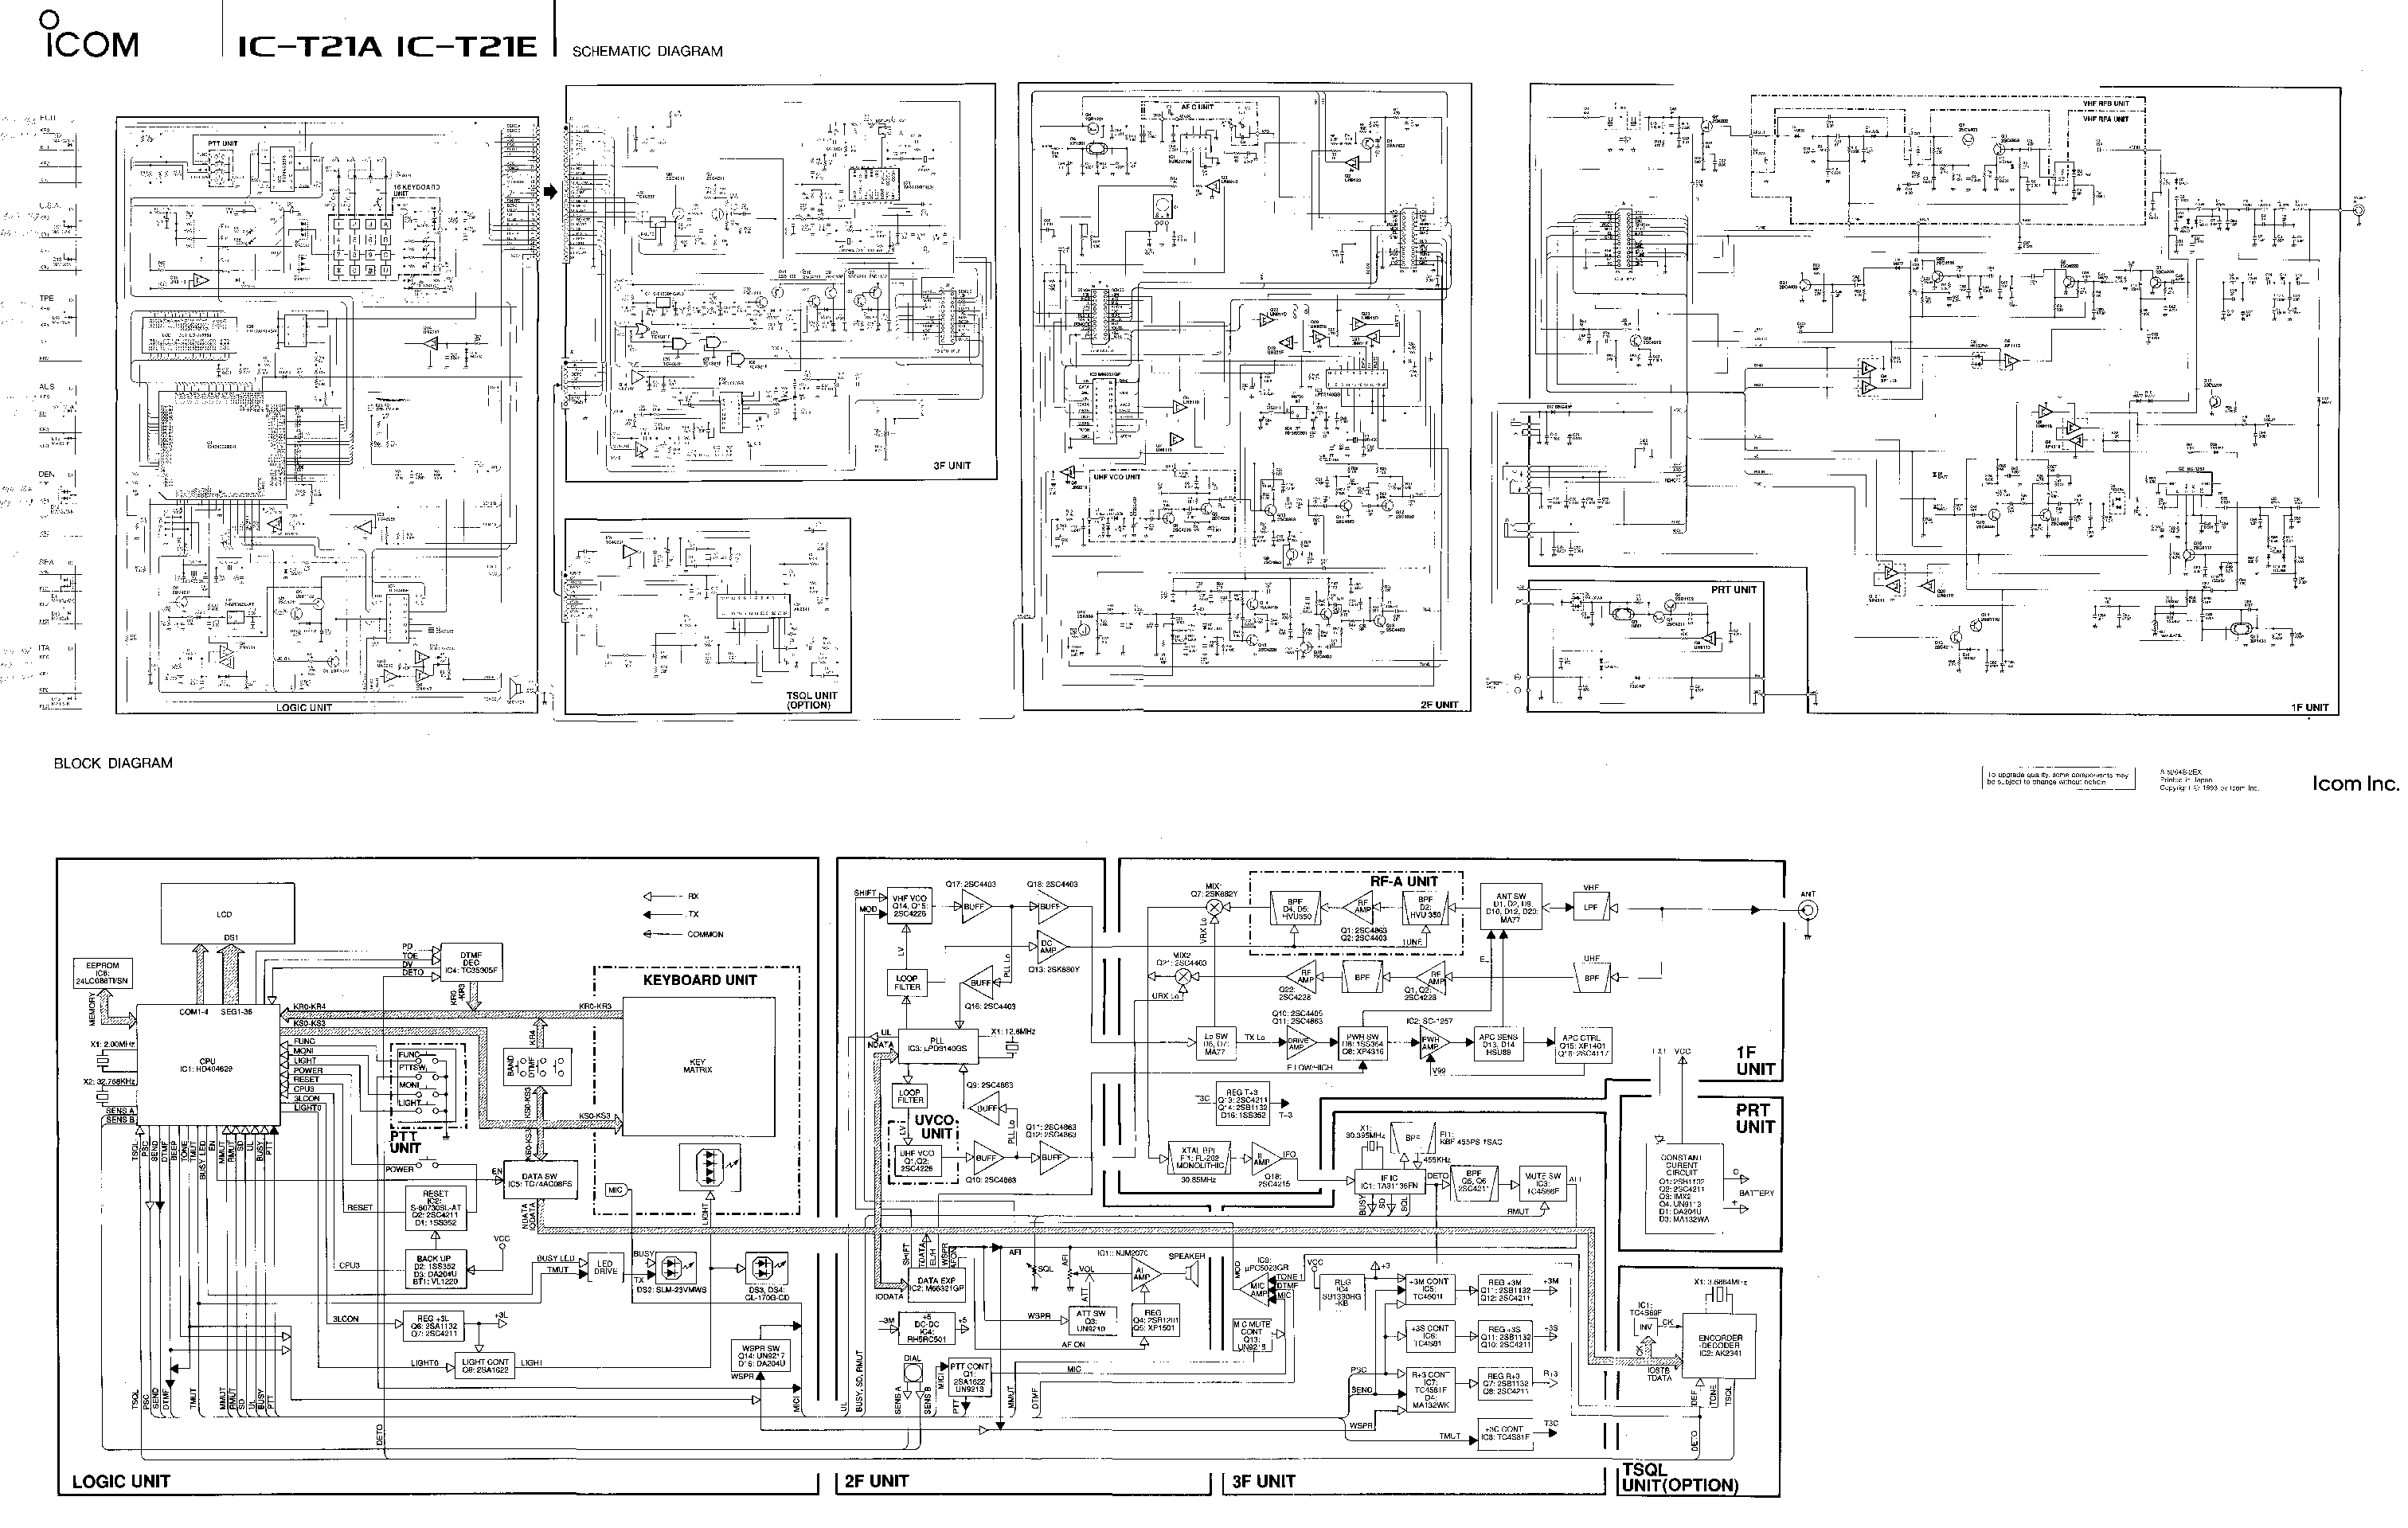 icom ic 21 schematic service manual download schematics eeprom rh elektrotanya com BMW ICOM Icom Logo